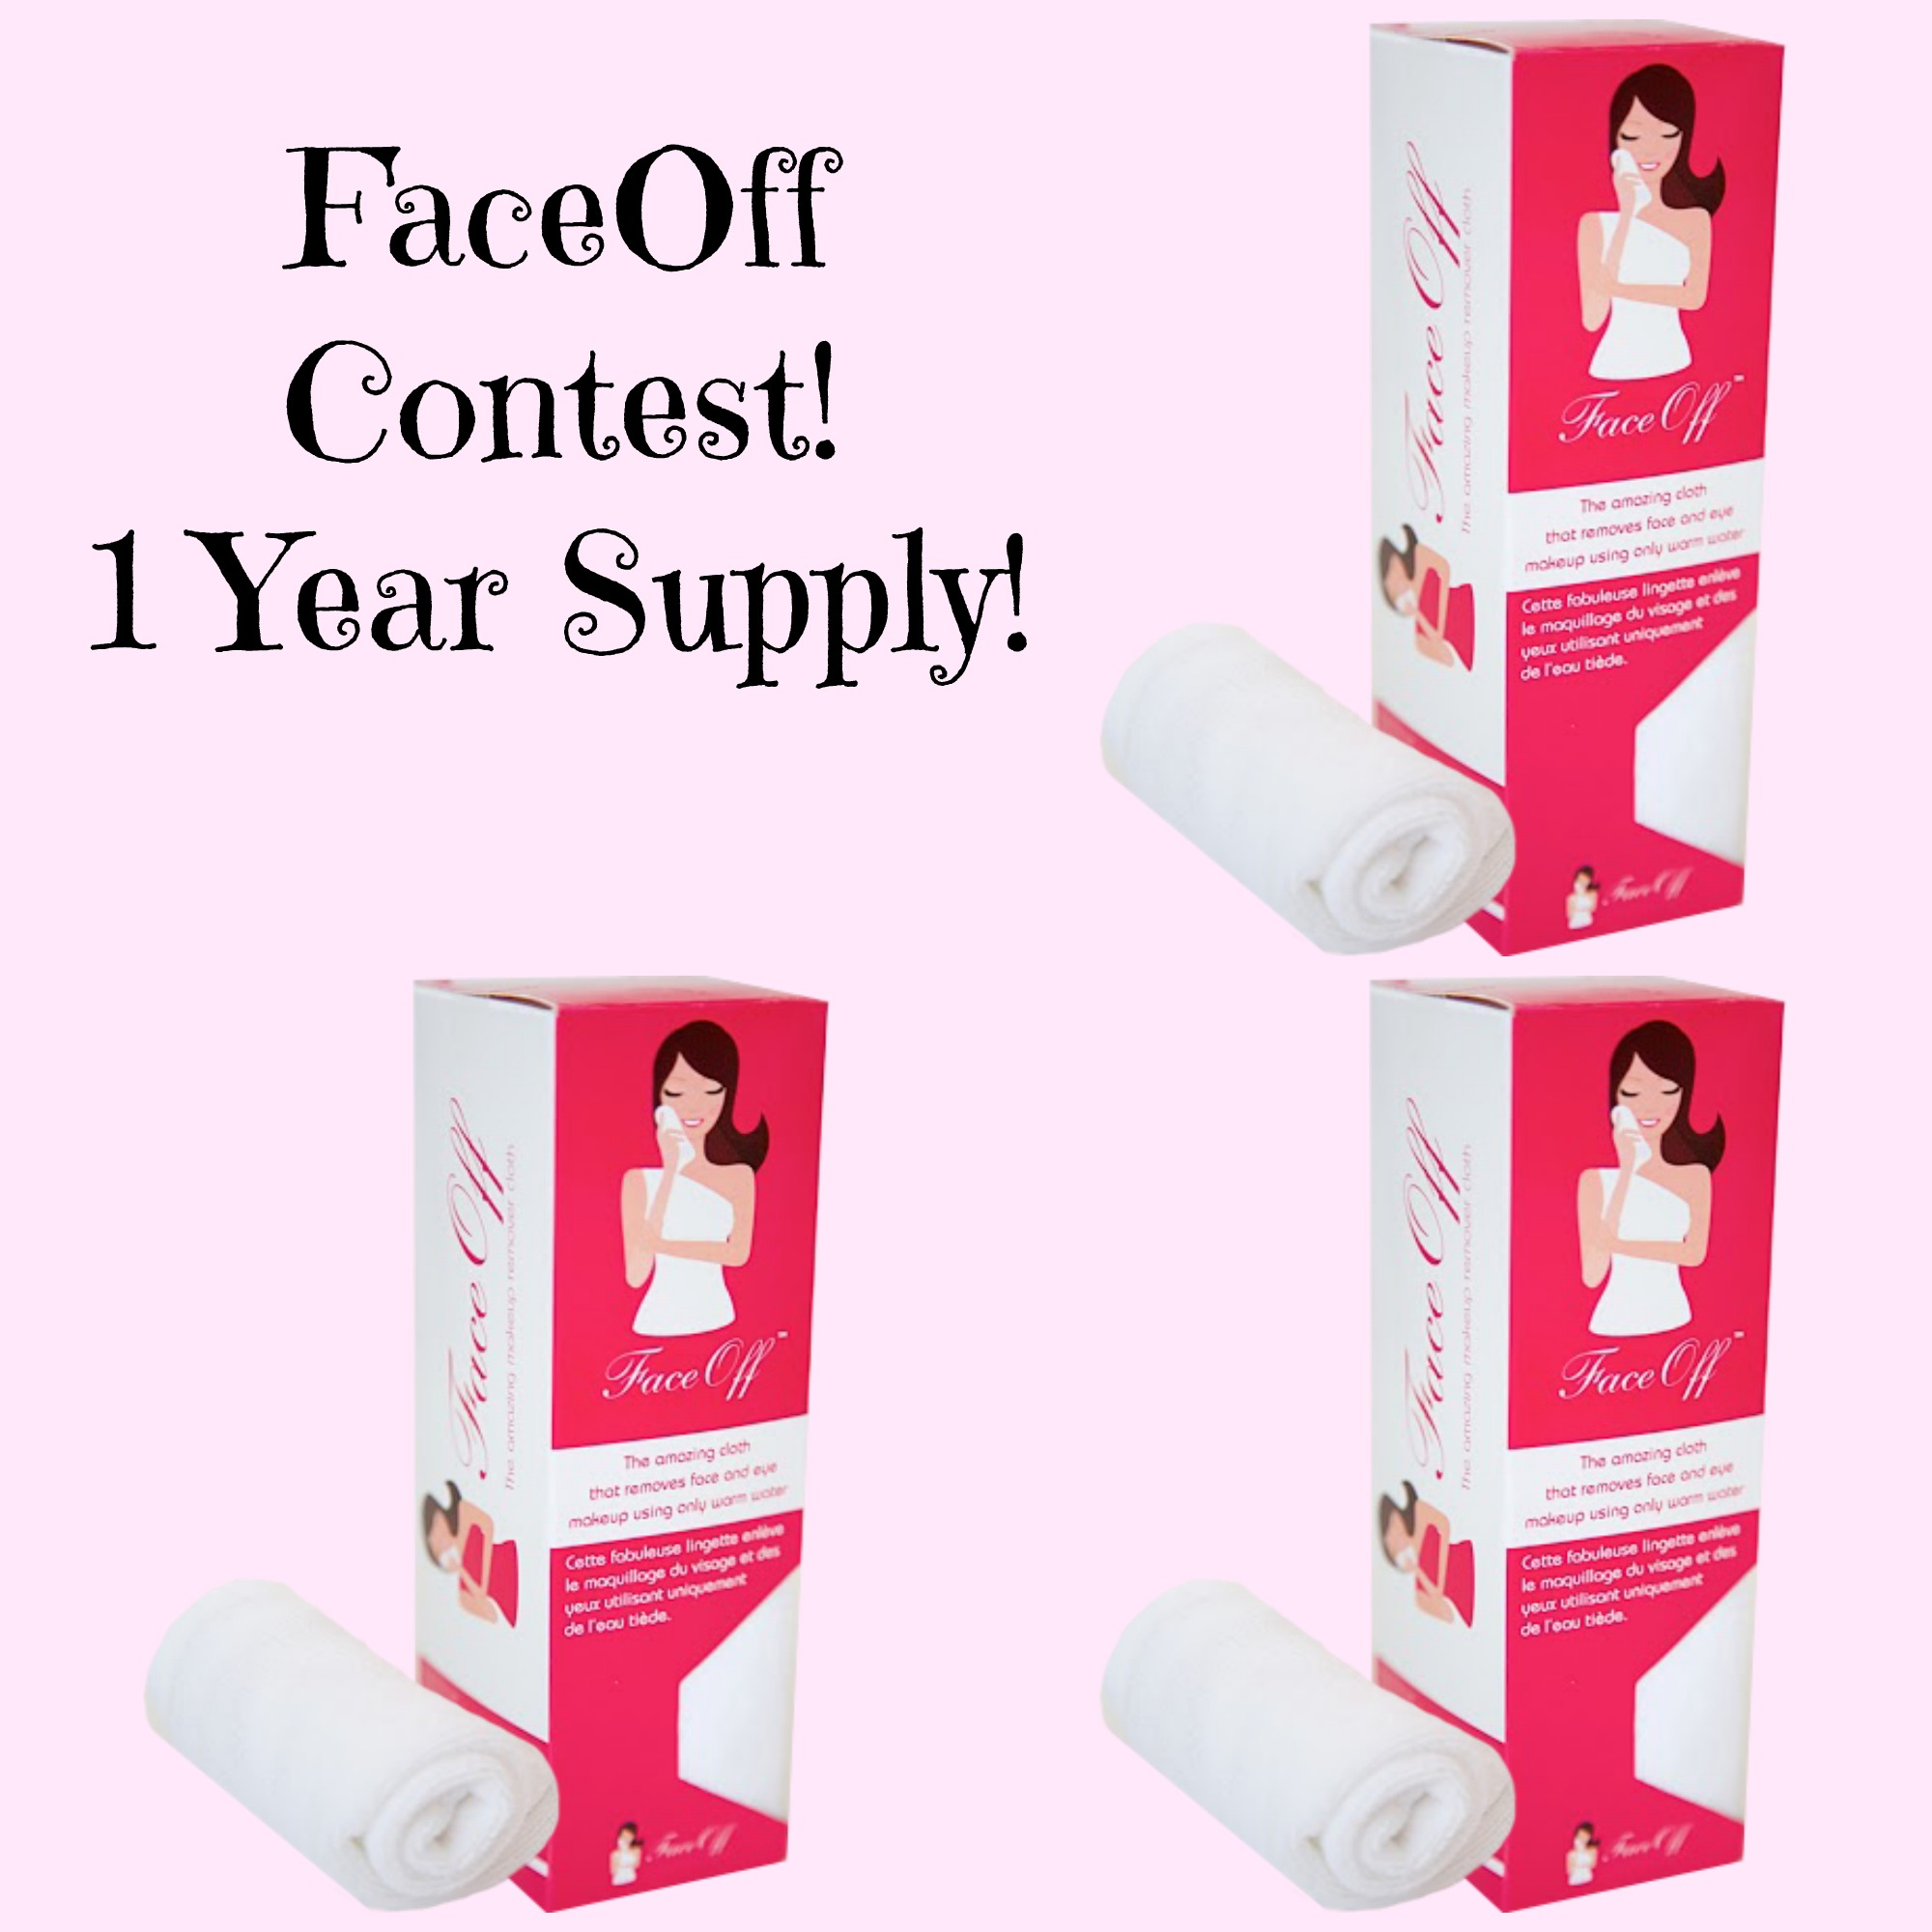 FaceOff Cloth Contest (1 Year Supply)